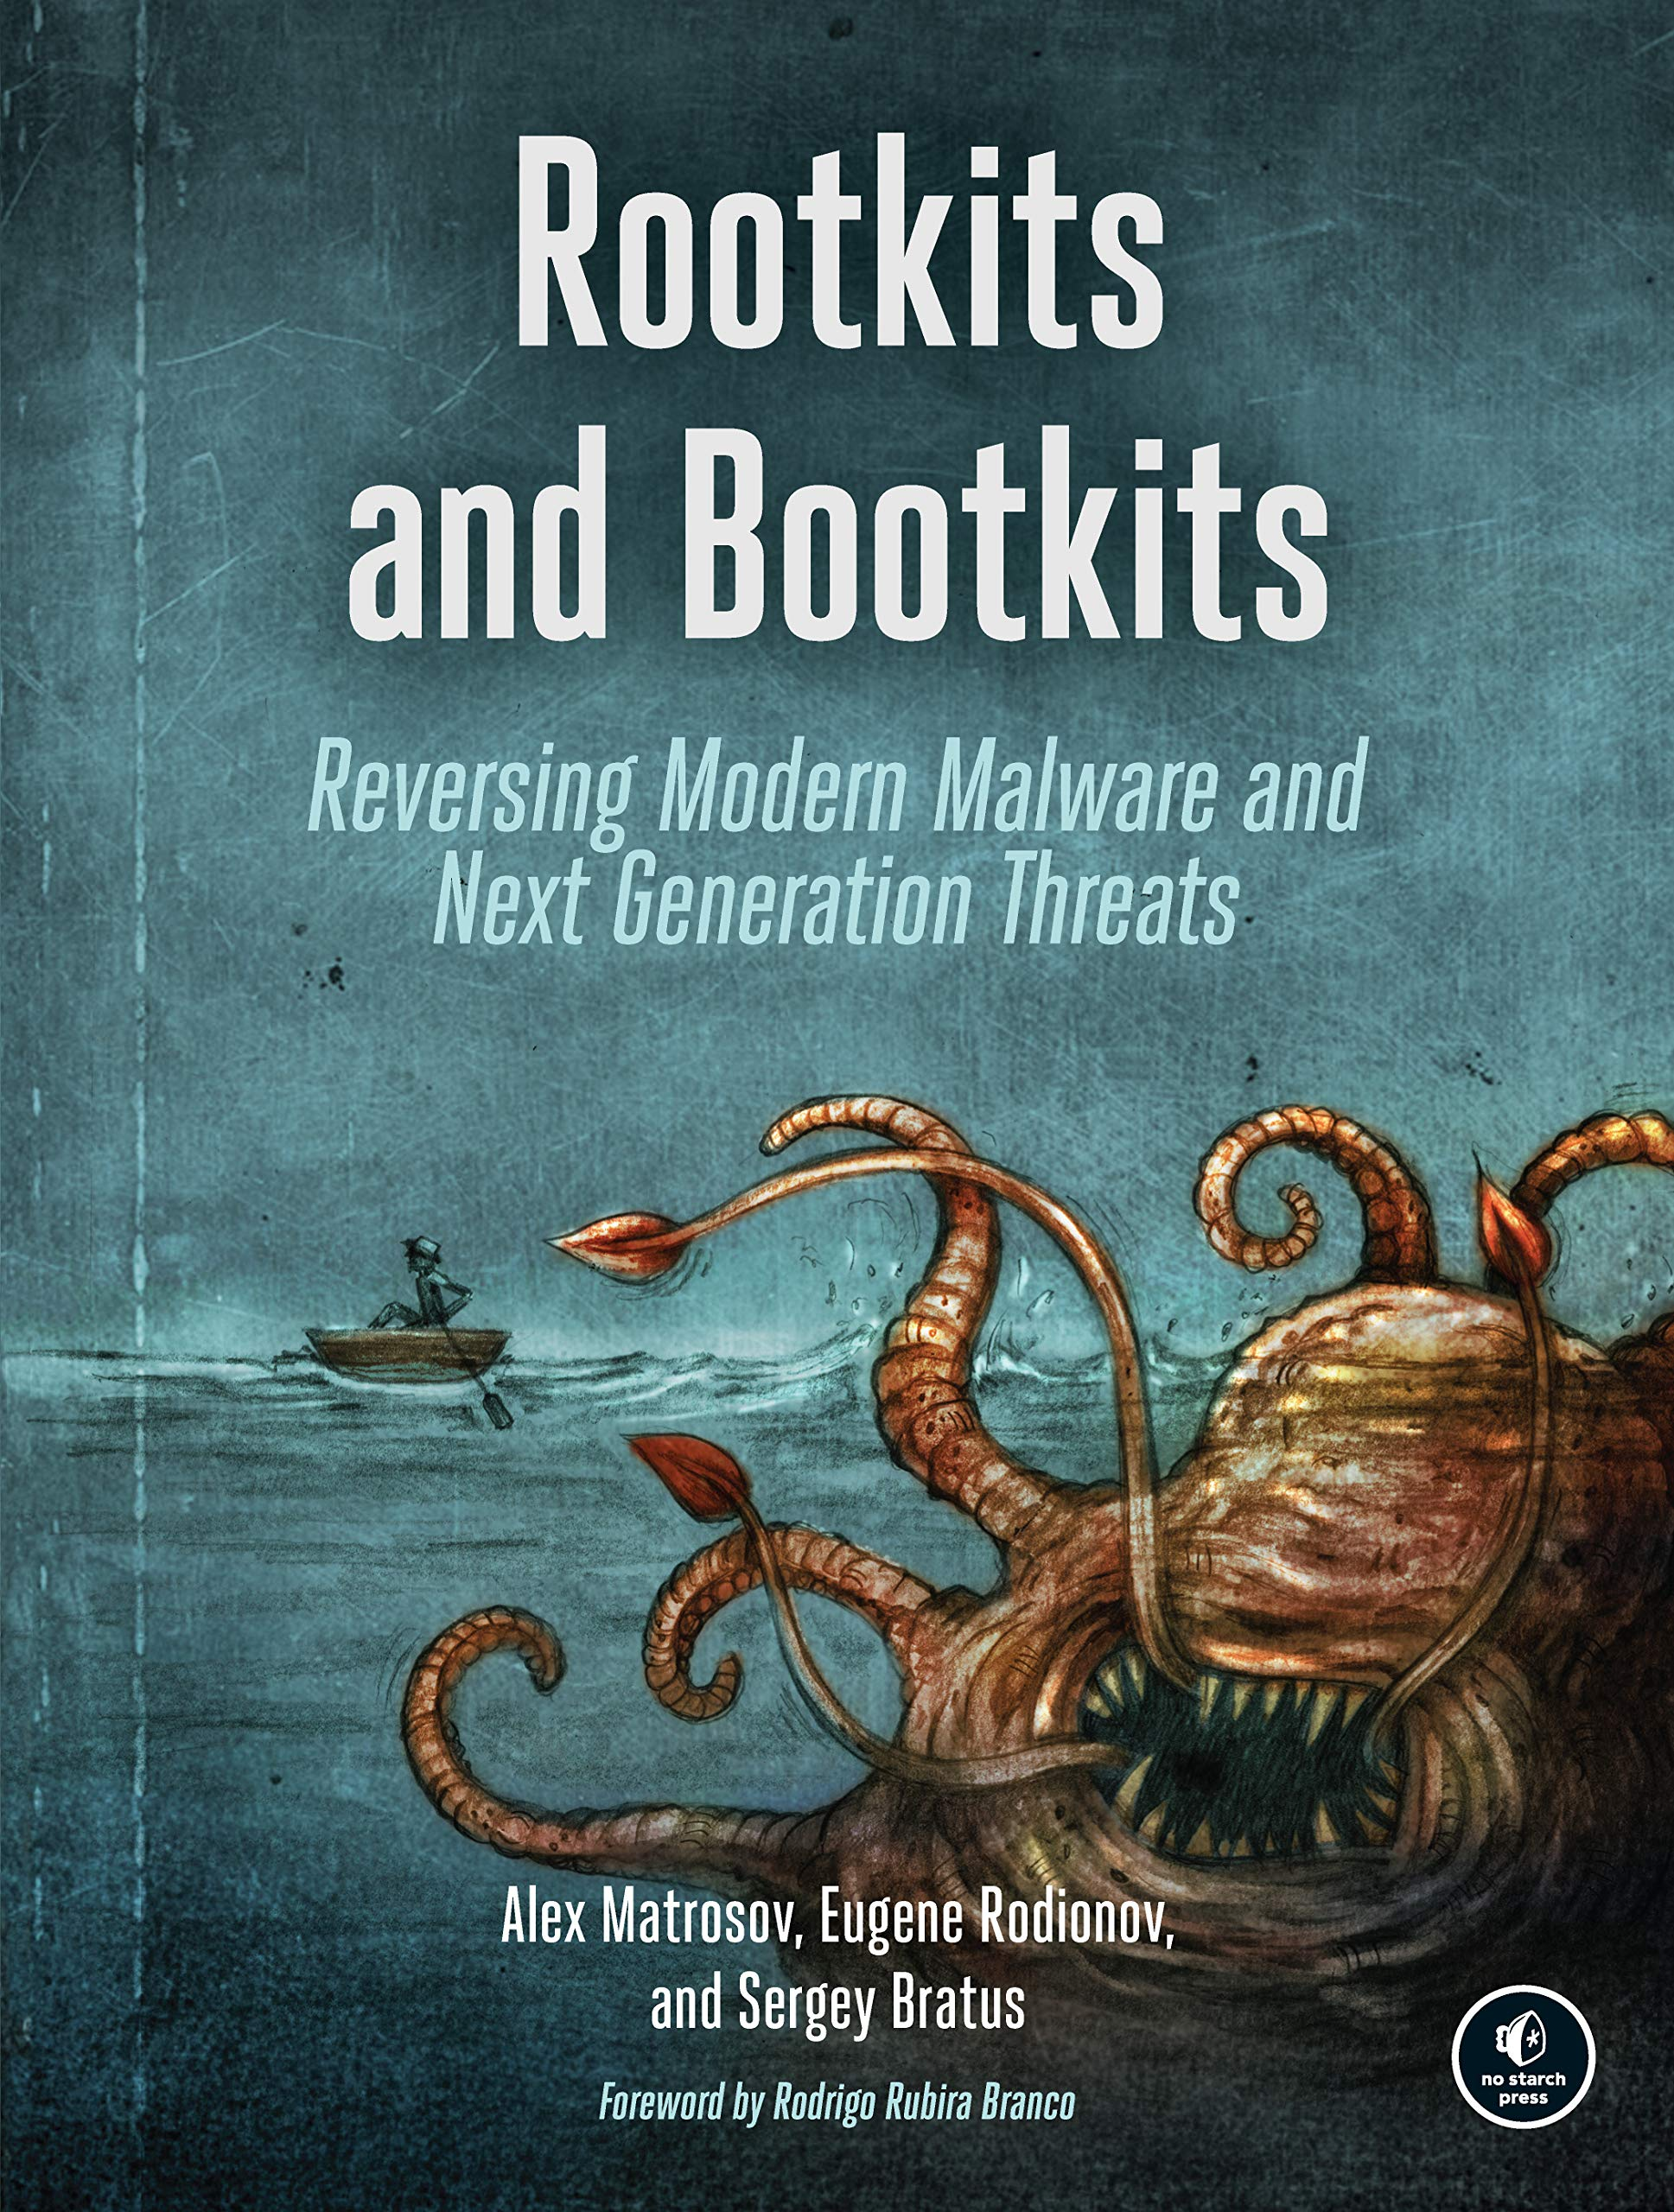 Rootkits and Bootkits: Reversing Modern Malware and Next